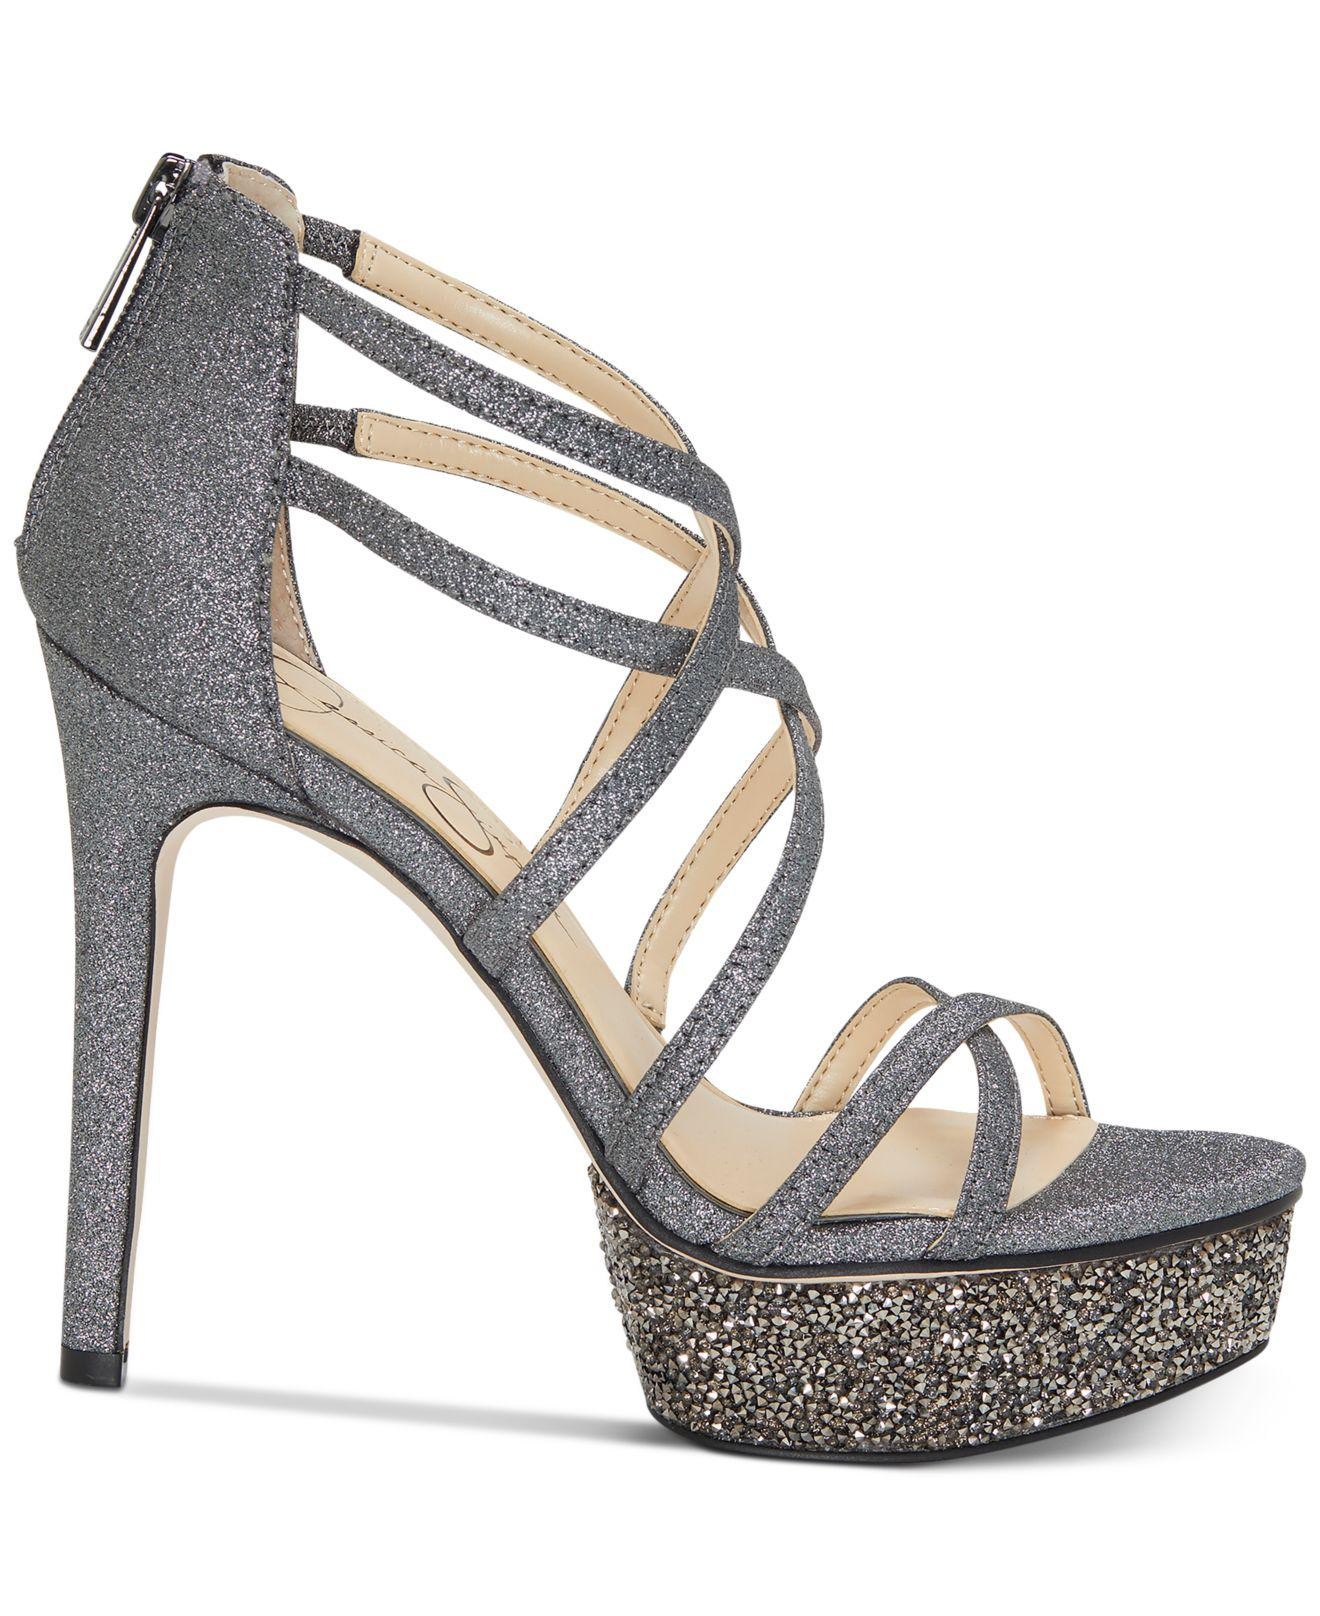 f0396f7a60d Lyst - Jessica Simpson Araya Dress Sandals